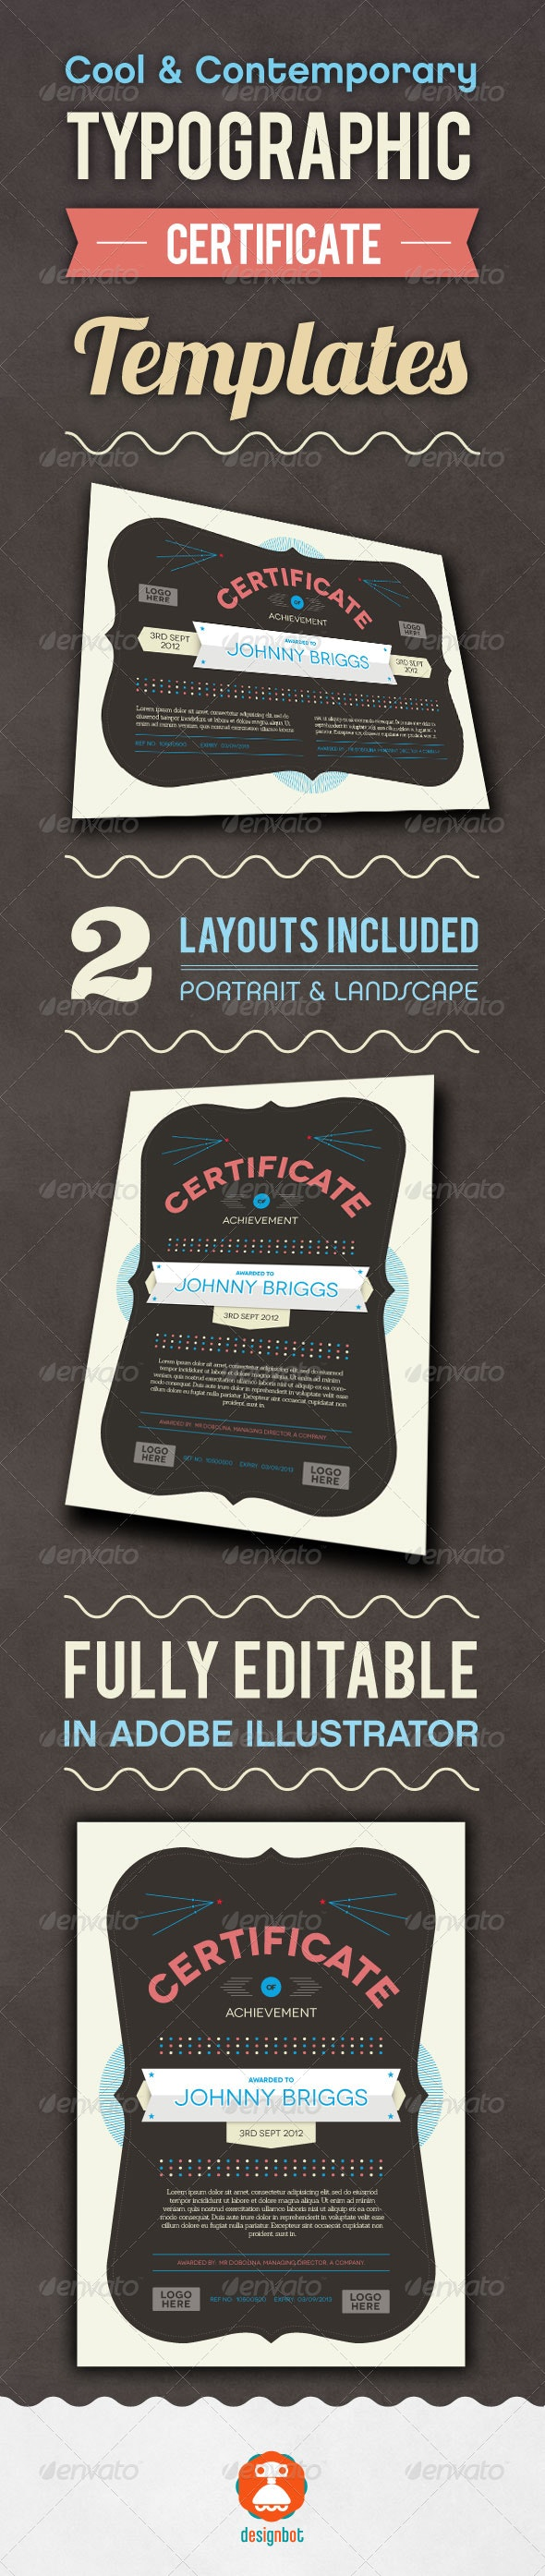 Typographic Certificate - Certificates Stationery